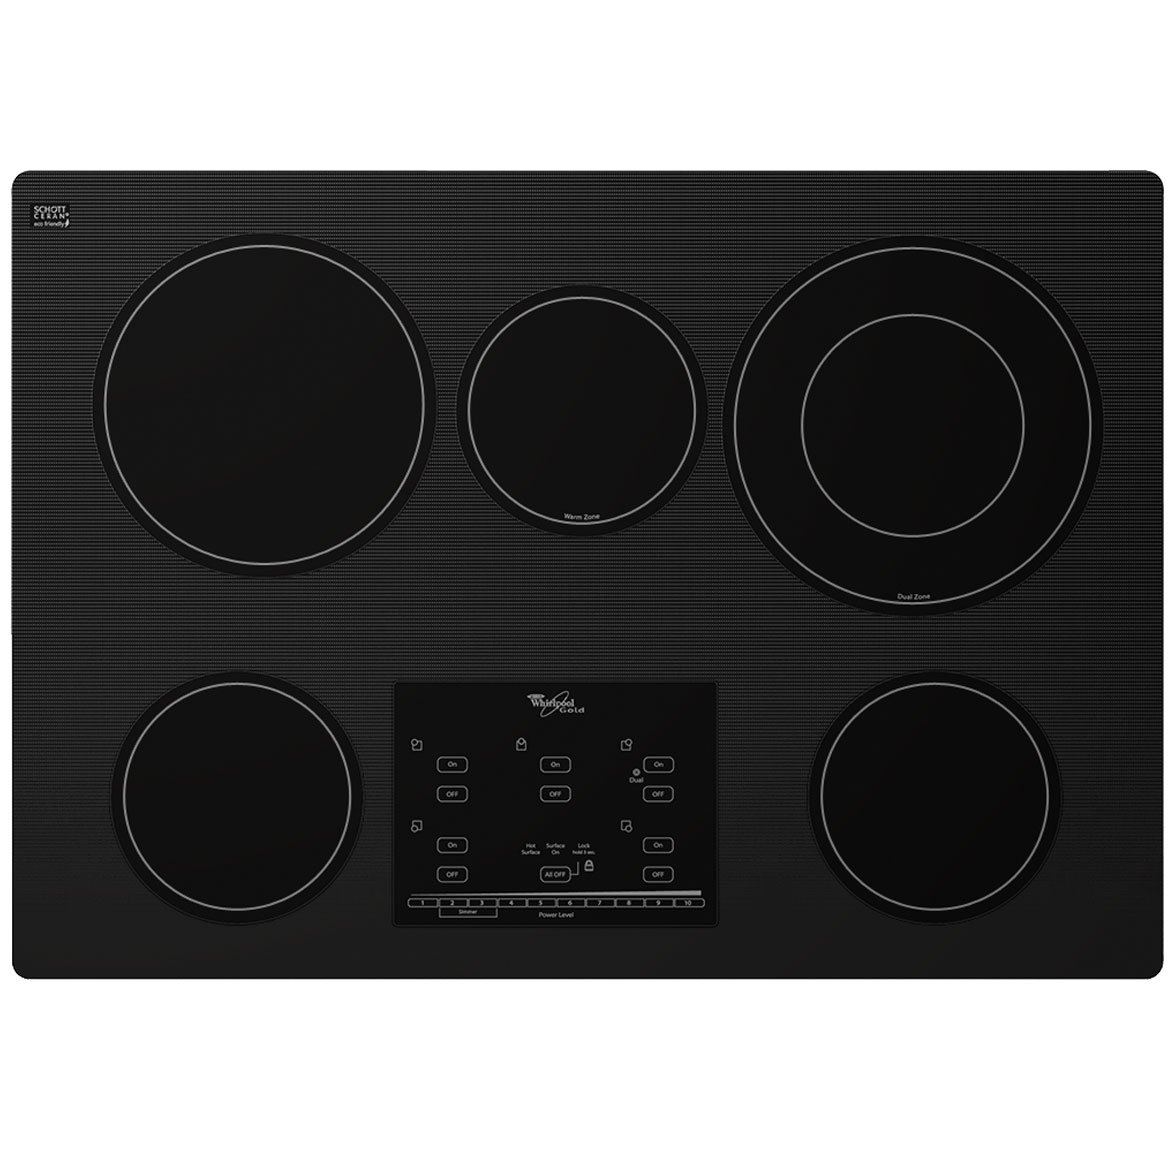 Whirlpool Gold G9CE3065XB 30 Smoothtop Electric Cooktop, 5 Elements, Tap Touch Controls, Black